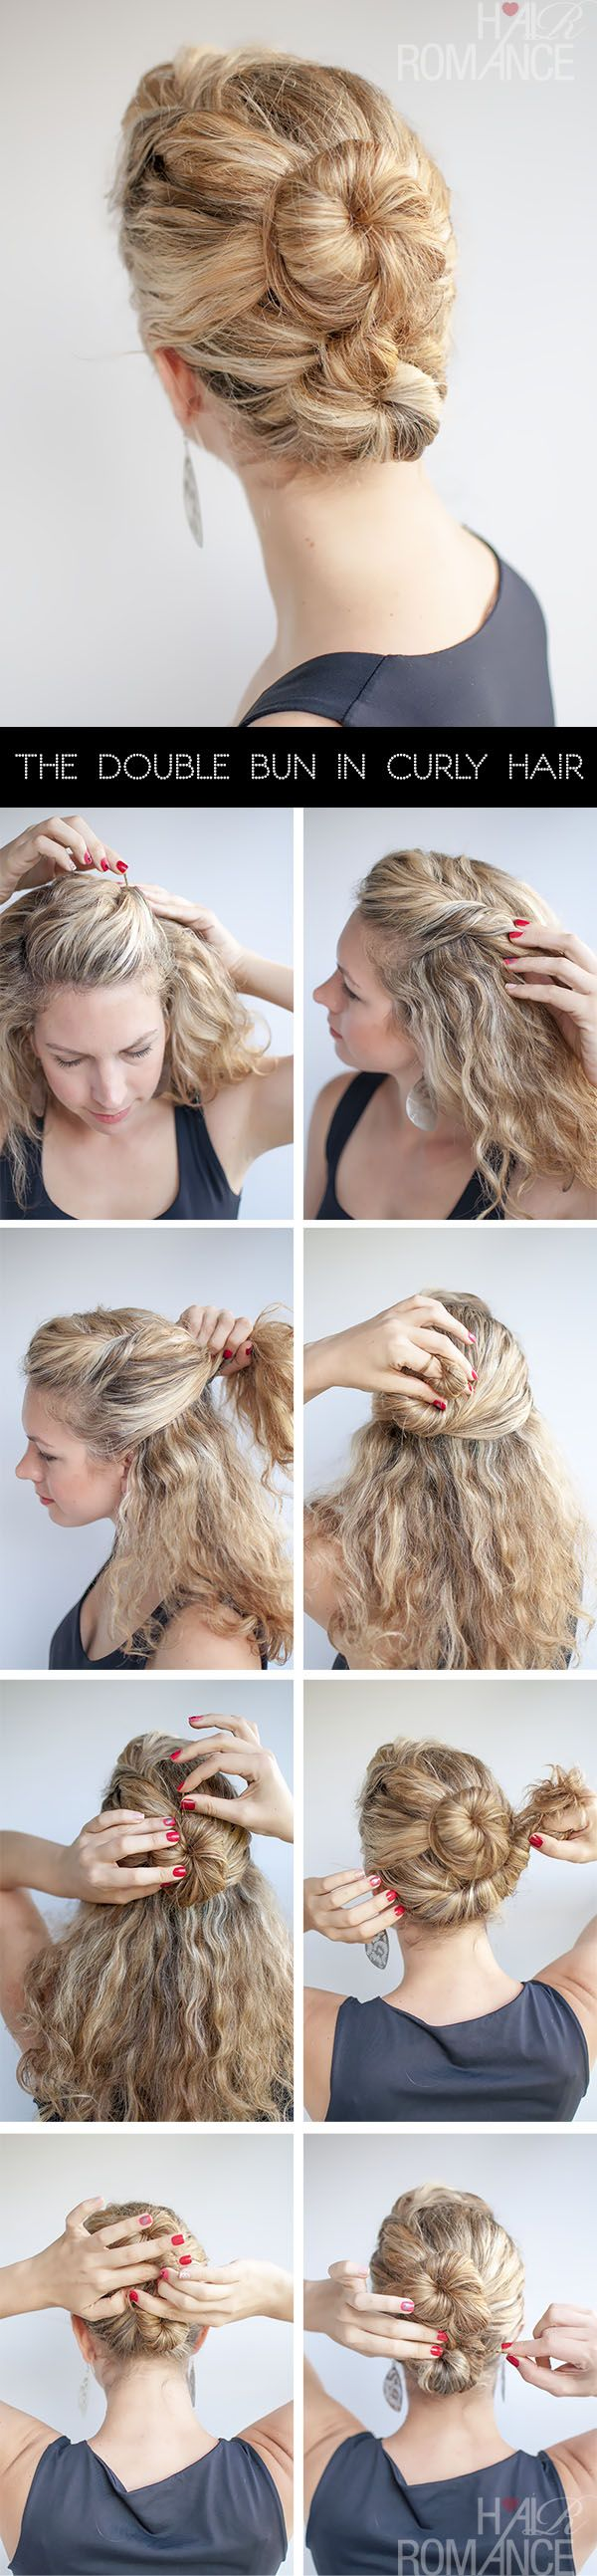 The double bun is a great style for all hair types. In fine hair, it gives the illusion of volume. Conversely in thick hair, it balances out the weight of your hair. - The Double Bun Hair Tutorial in curly hair | hairromance